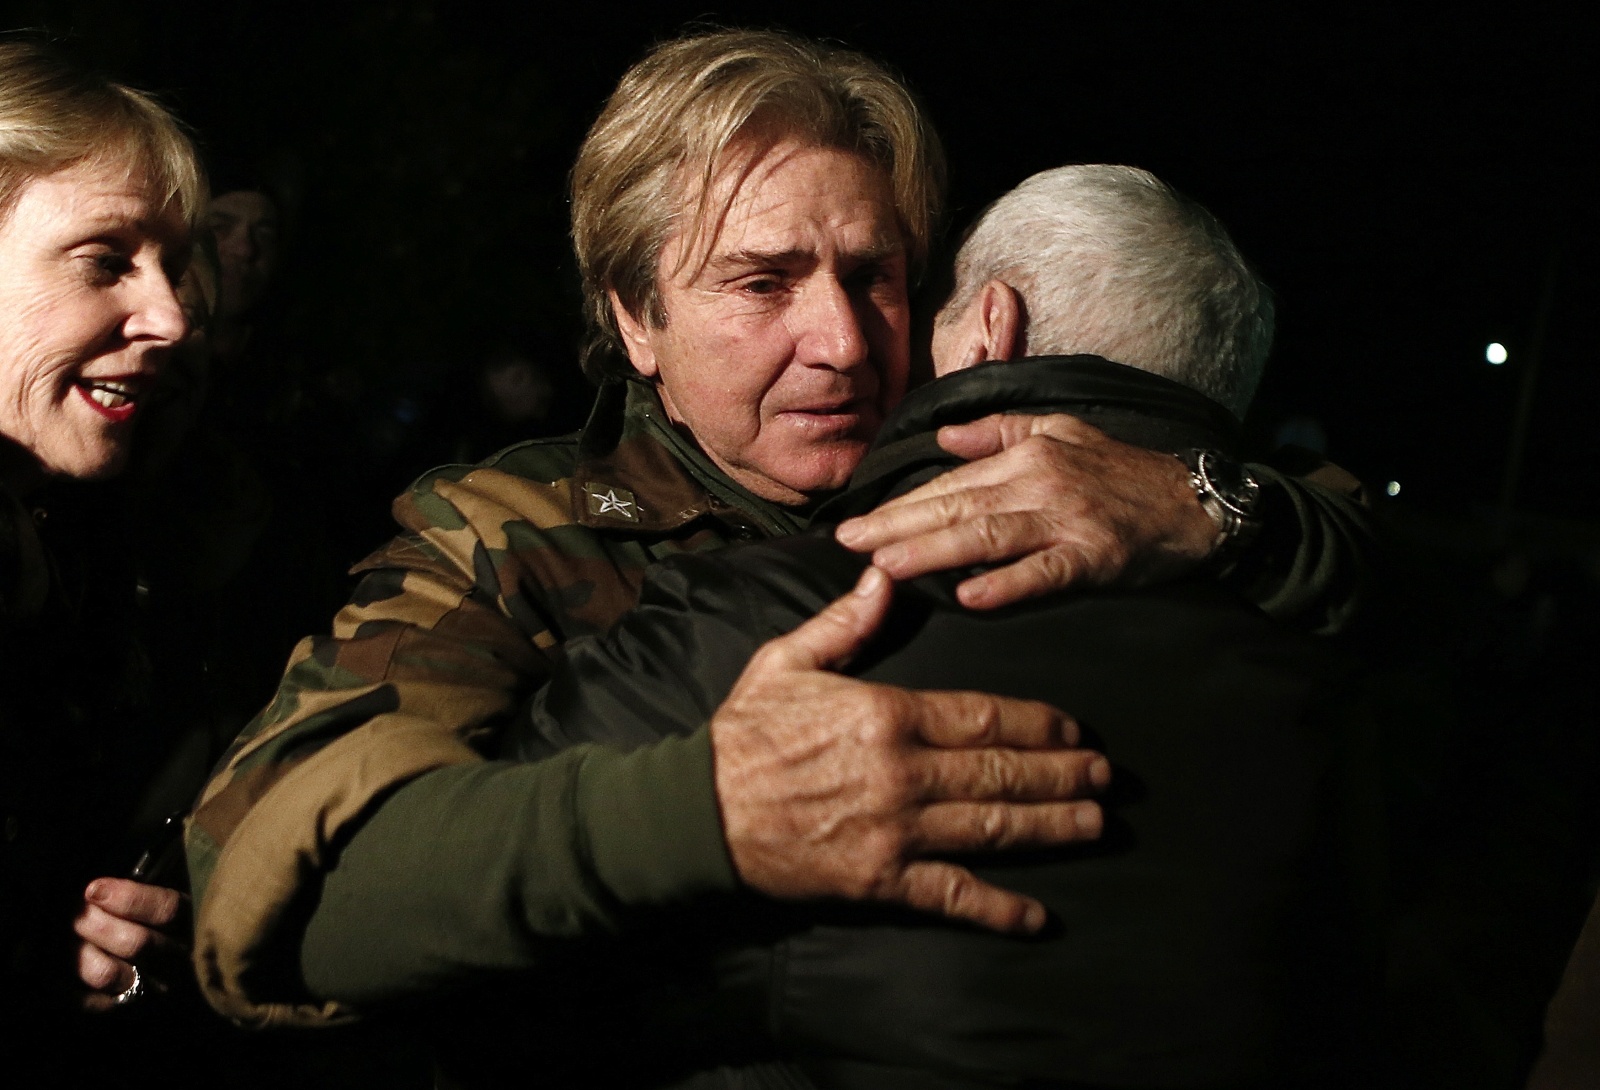 Andreas Tolaros, who was rescued from the Norman Atlantic ferry, hugs a friend after arriving at the Elefsina air-base near Athens